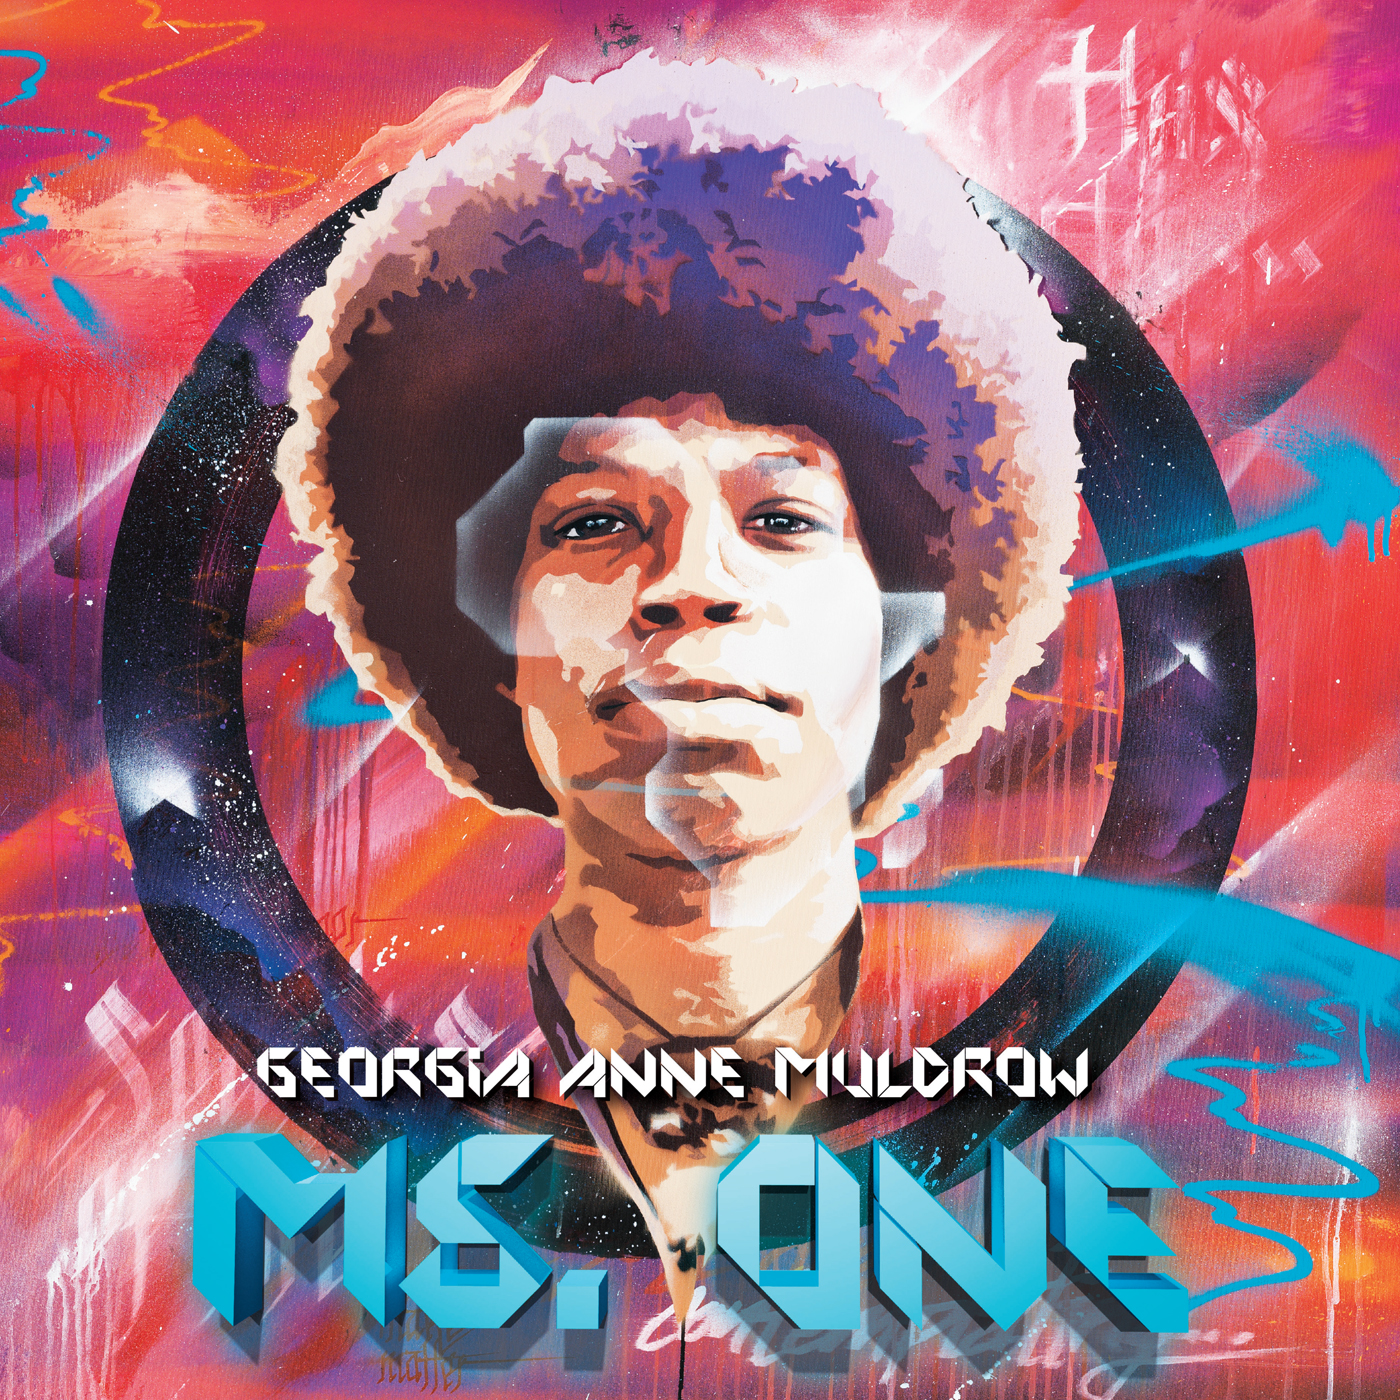 Georgia Anne Muldrow – Ms. One (Album Review)